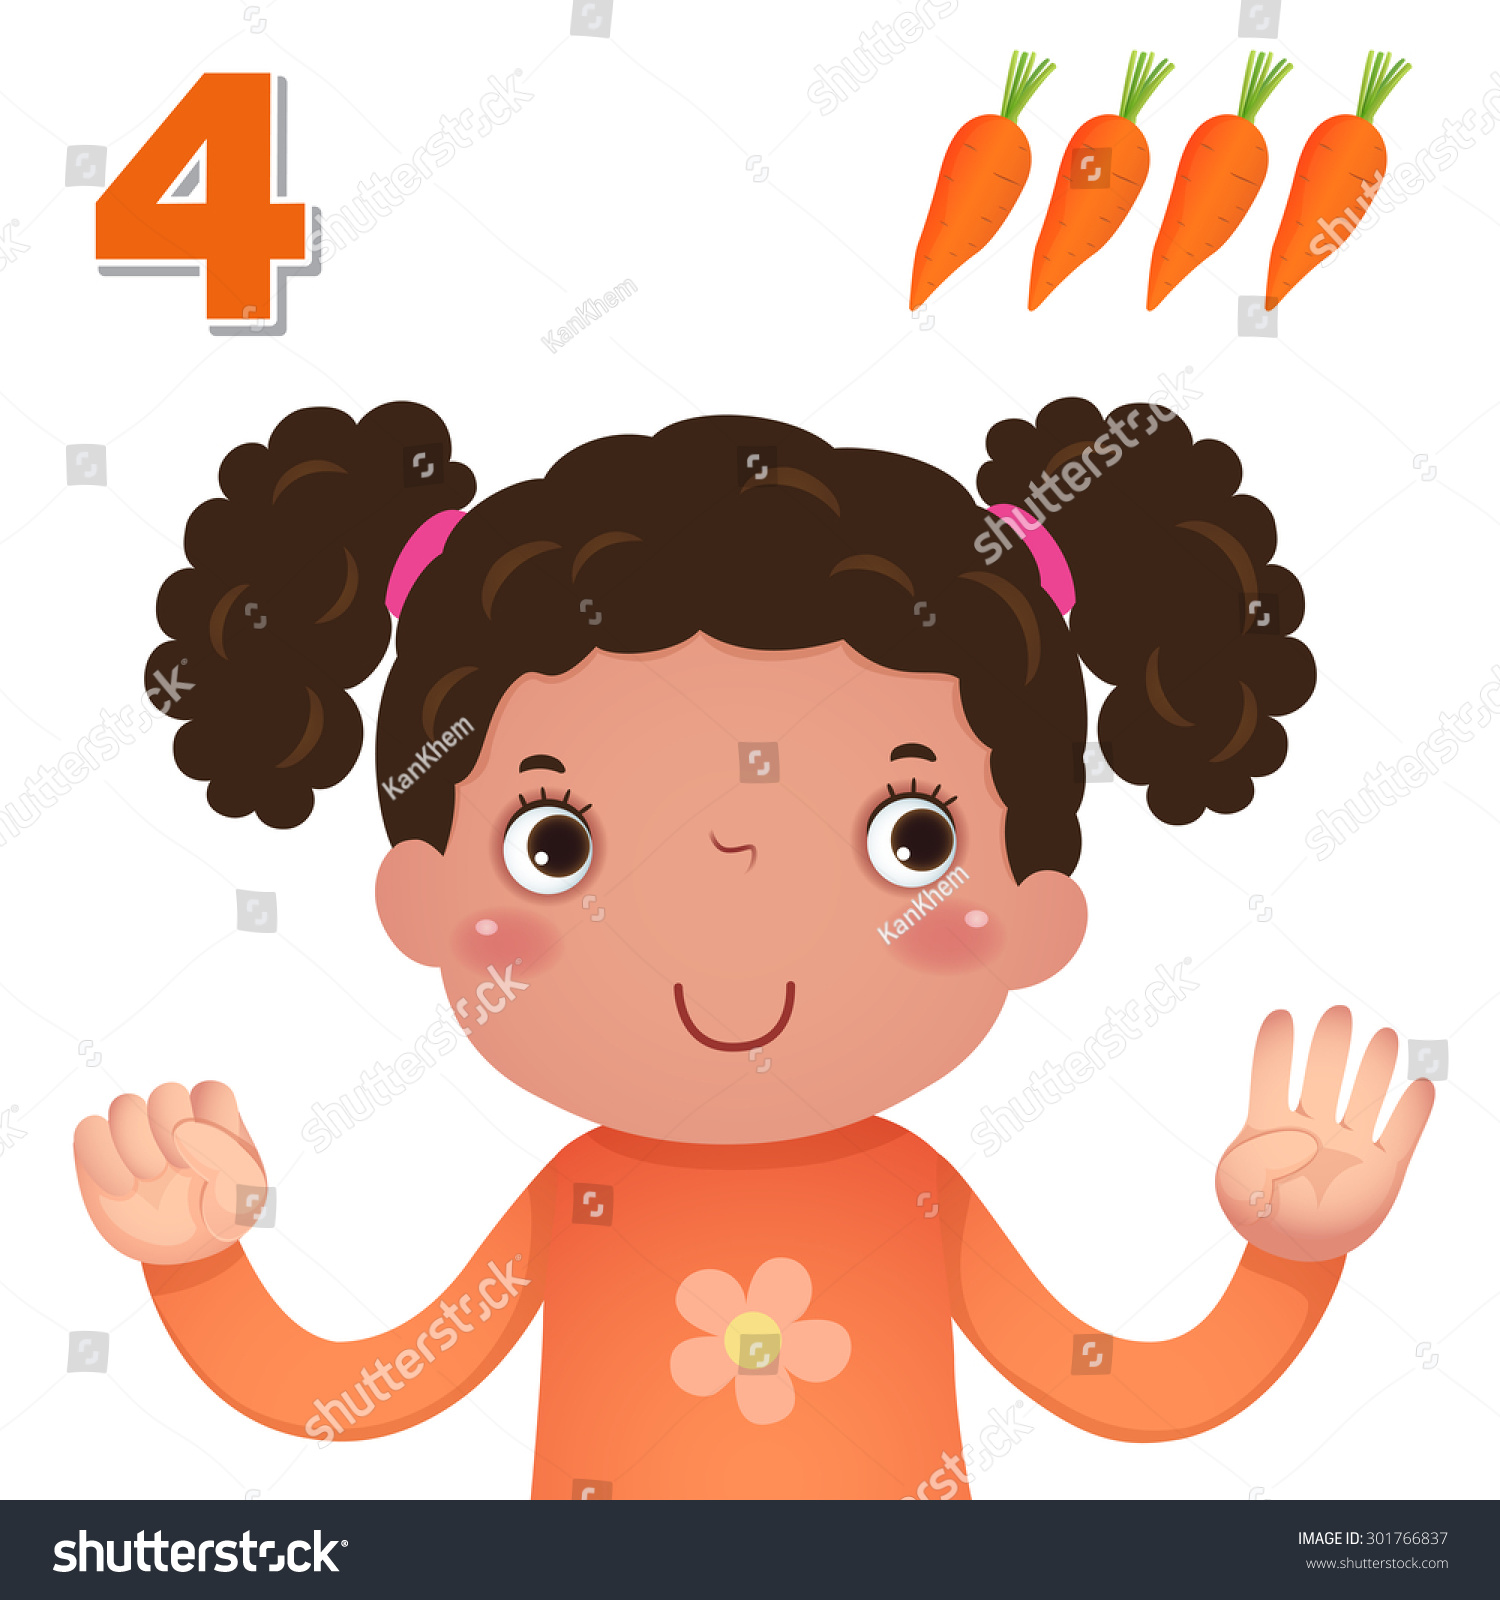 Kids Learning Material Learn Number Counting Stock Vector